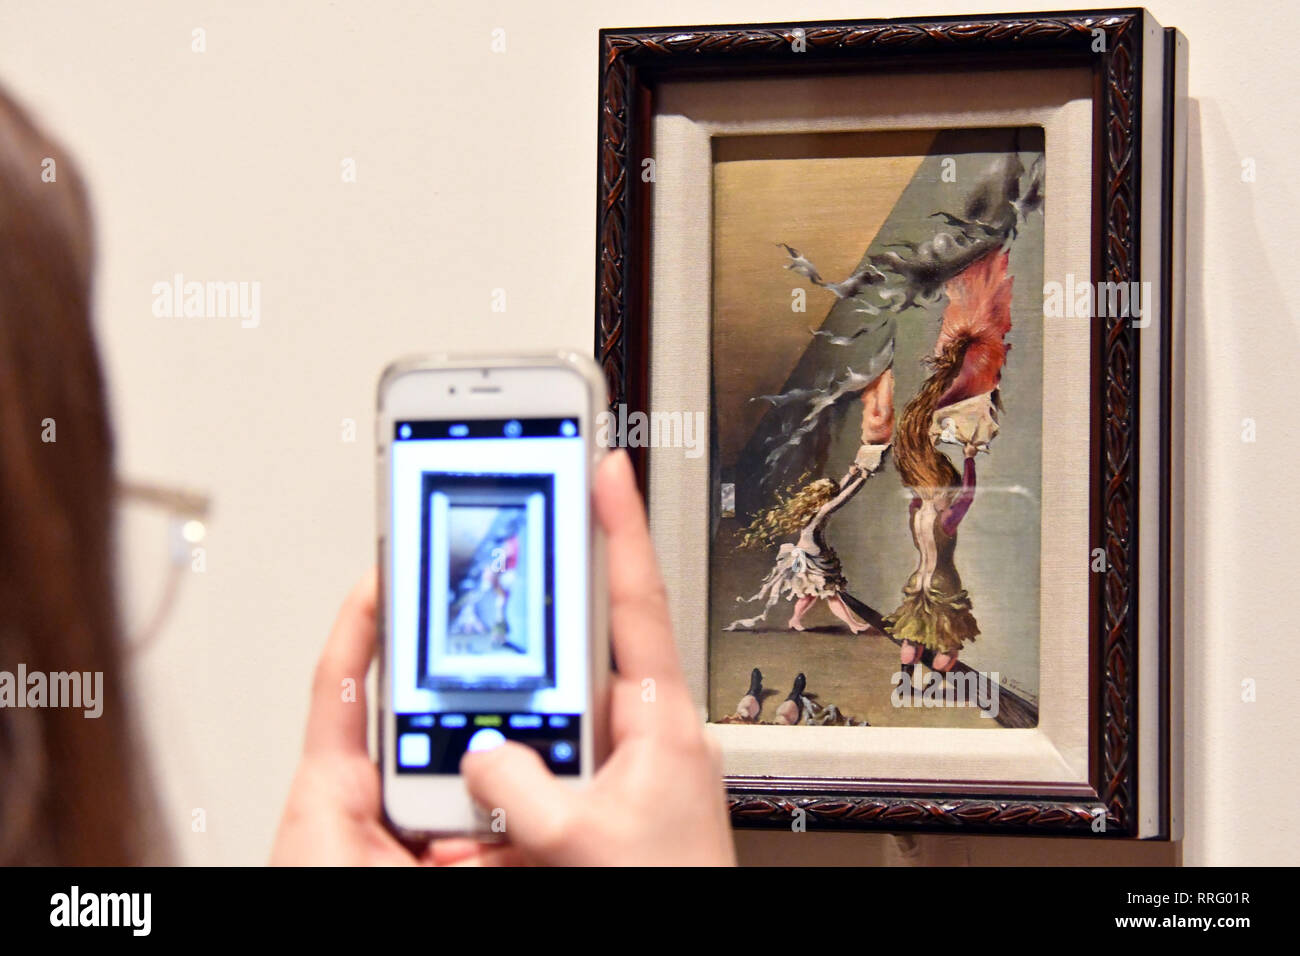 London, UK. 26th Feb, 2019. Tate Modern unveils major exhibition of pioneering artist Dorothea Tanning, the first large-scale exhibition of her work for 25 years. Children's Games, 1942 Credit: Nils Jorgensen/Alamy Live News Stock Photo